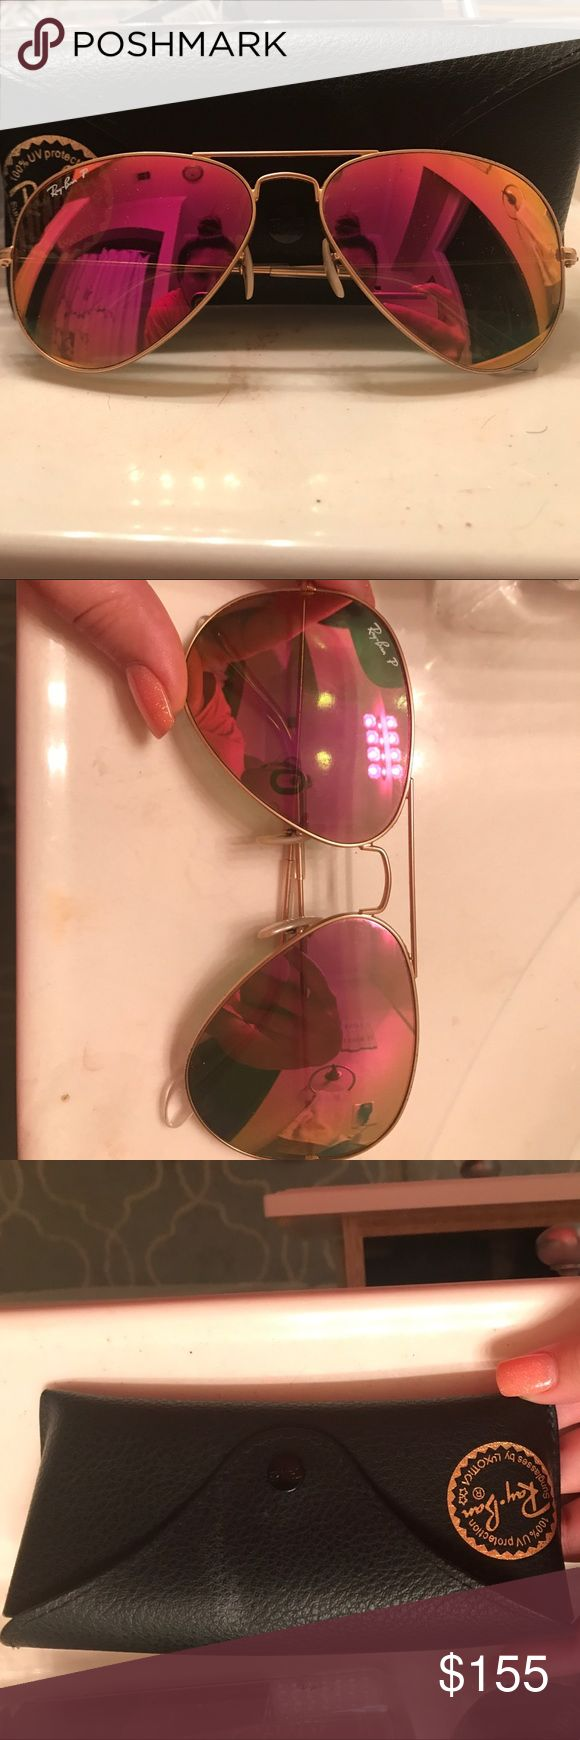 Polarized Flash Lens Ray-bans These have been worn a few times. They don't have any wear or tear at all. The lenses are scratch free. These are pink flash lenses and polarized. Amazing glasses. Black Ray-ban case and cleaning cloth included. Ray-Ban Accessories Sunglasses